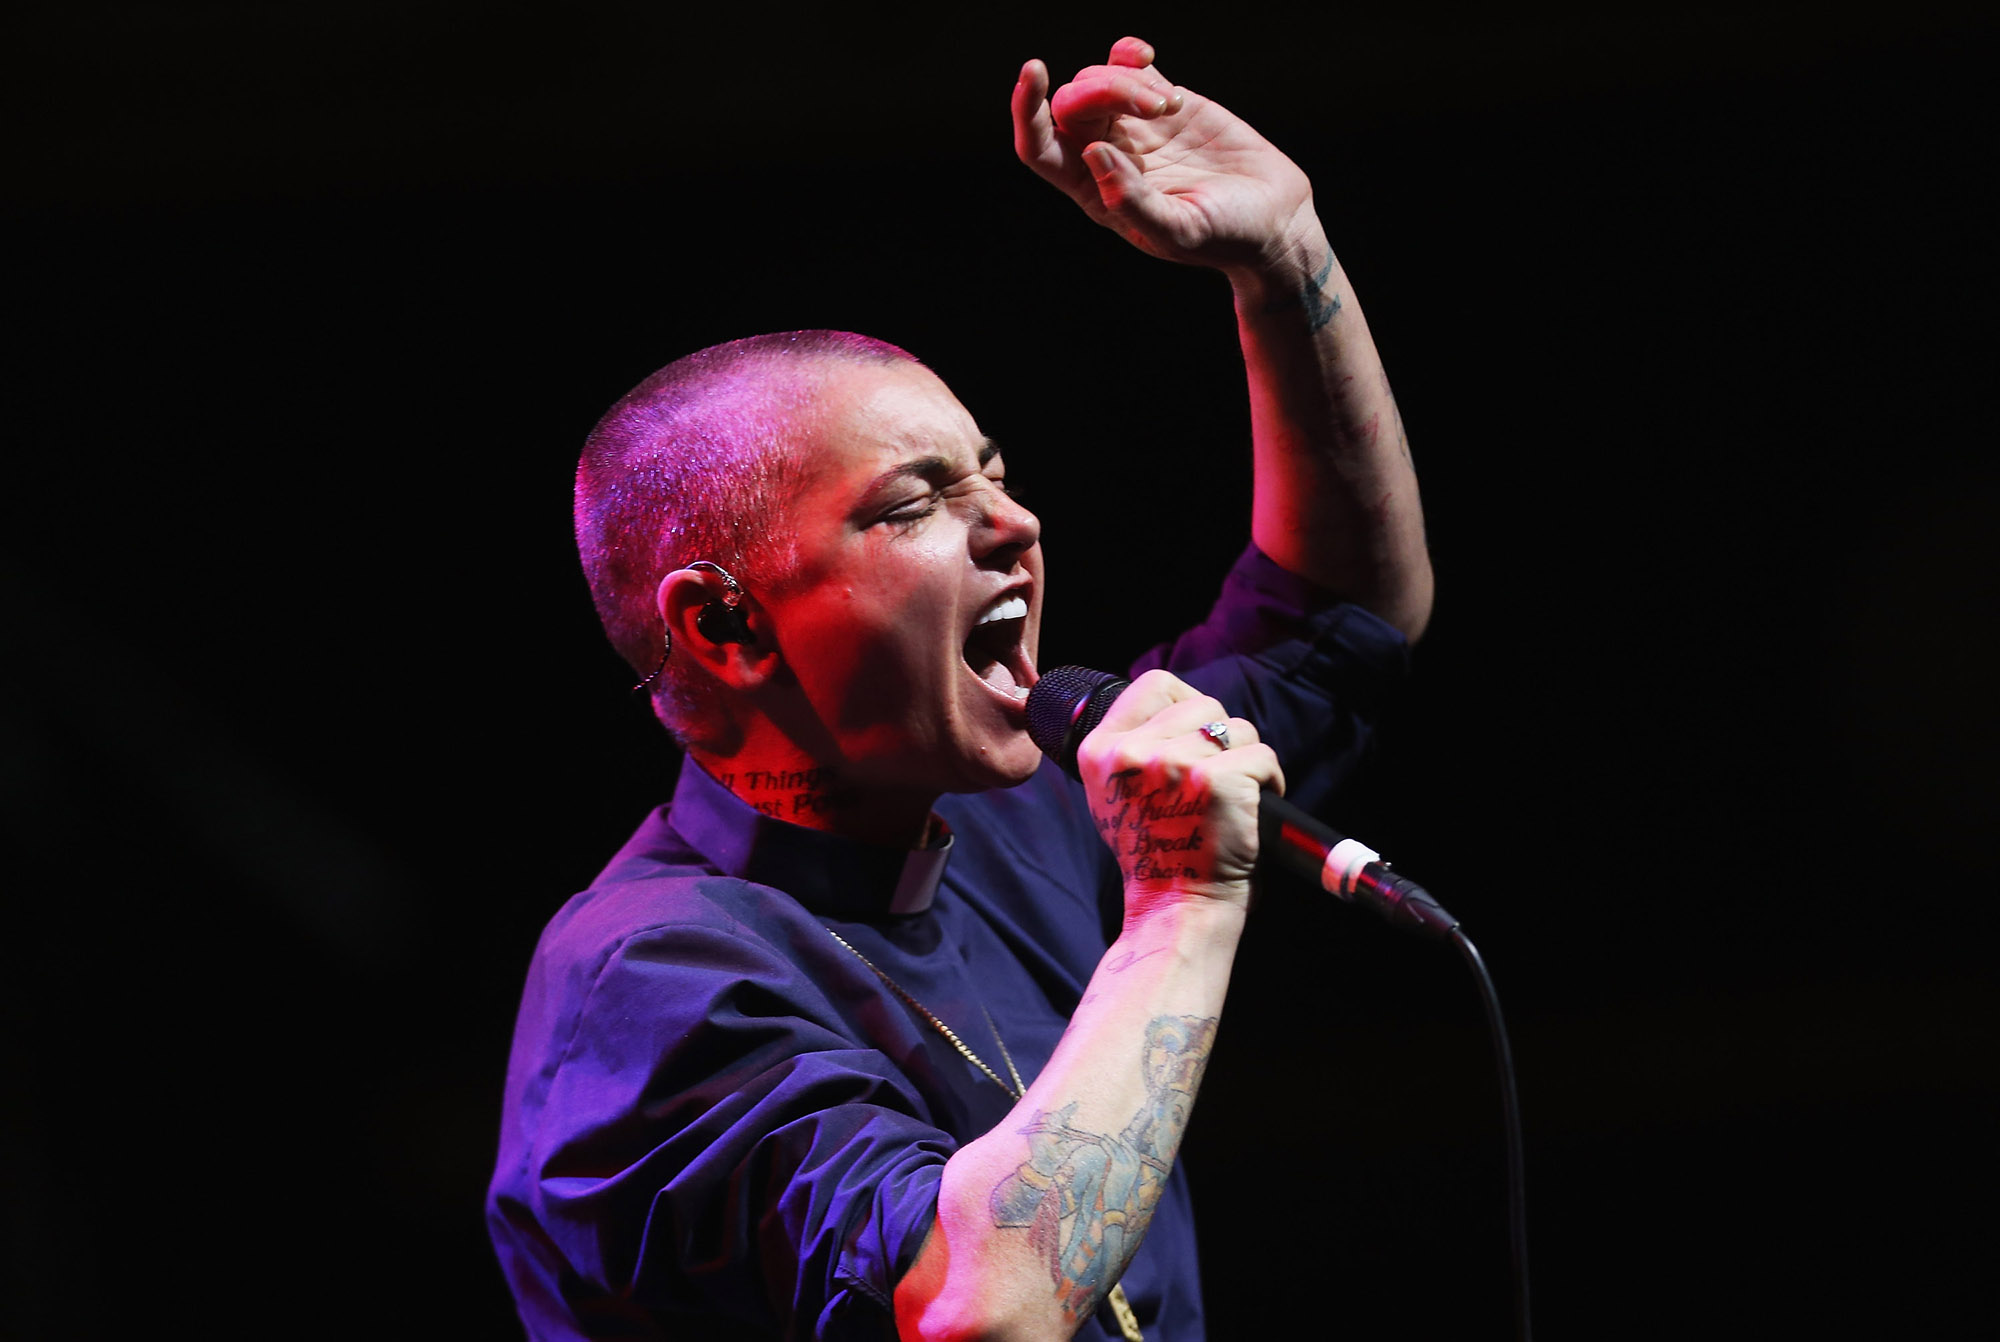 SYDNEY, AUSTRALIA - MARCH 19:  Sinead O'Connor performs live for fans  at Sydney Opera House on March 19, 2015 in Sydney, Australia.  (Photo by Don Arnold/WireImage)